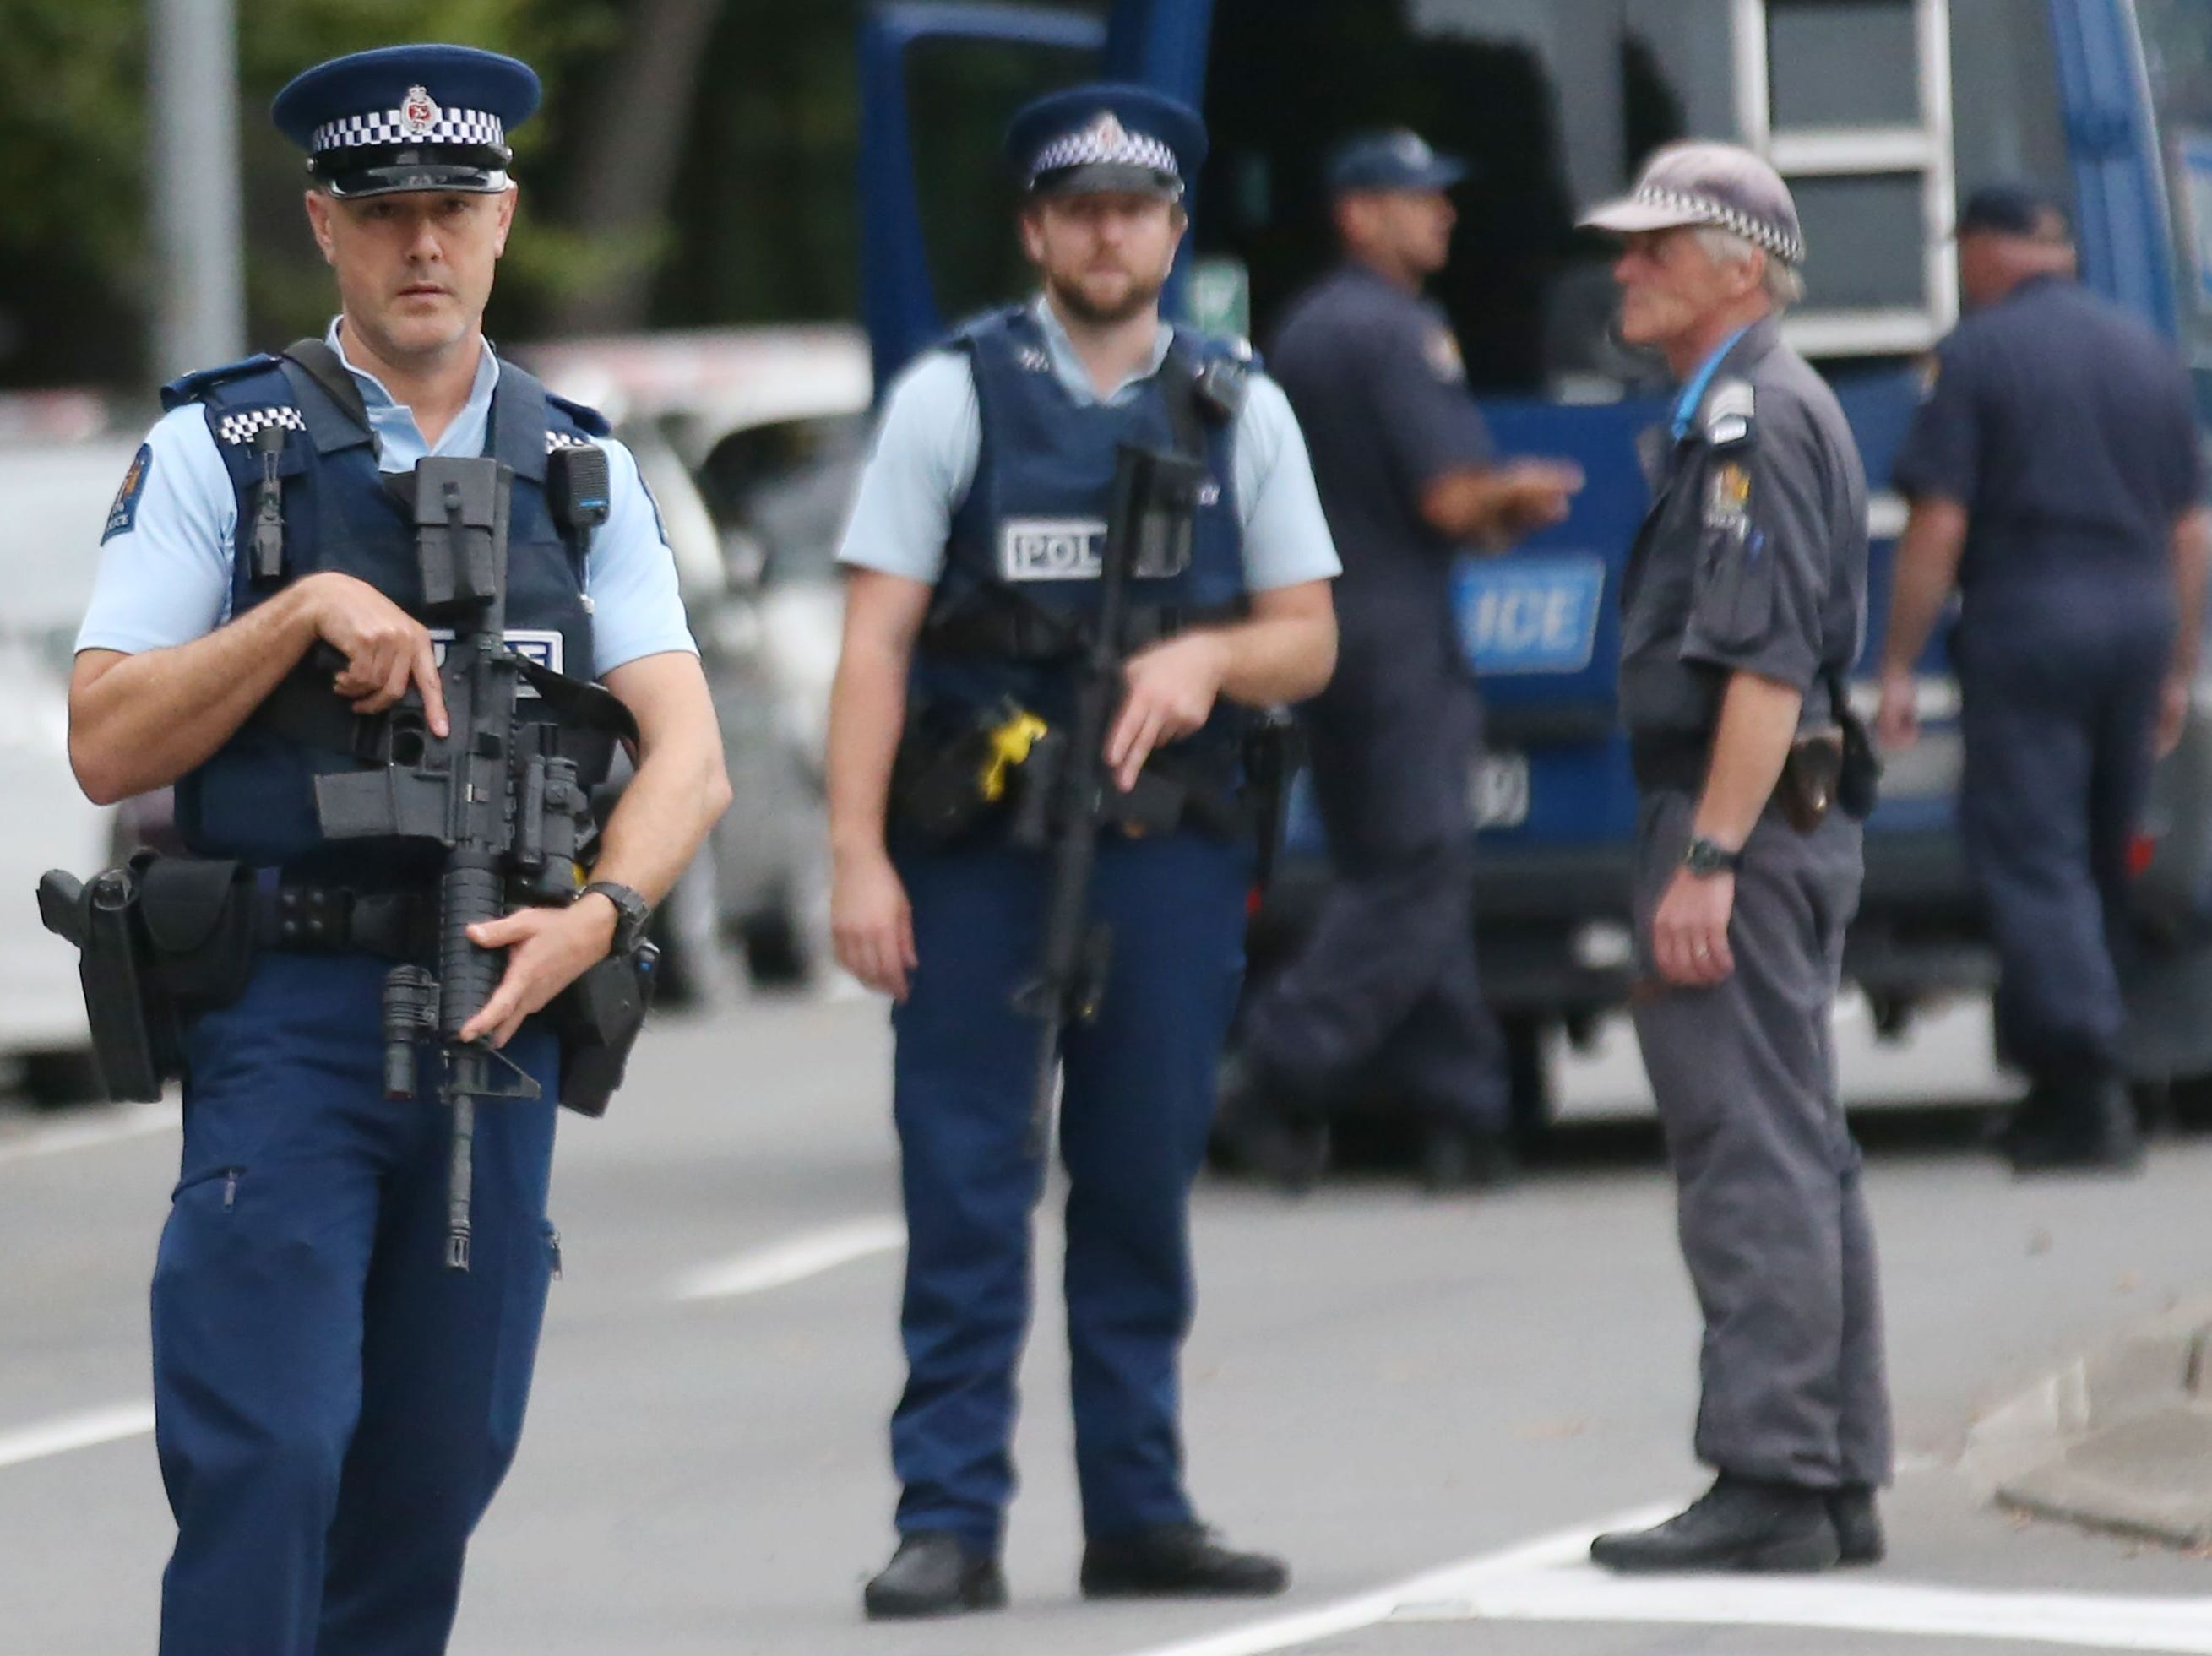 Armed police keep watch as people pay their respects in front of floral tributes for victims of the March 15 mosque attacks, in Christchurch on March 16, 2019.